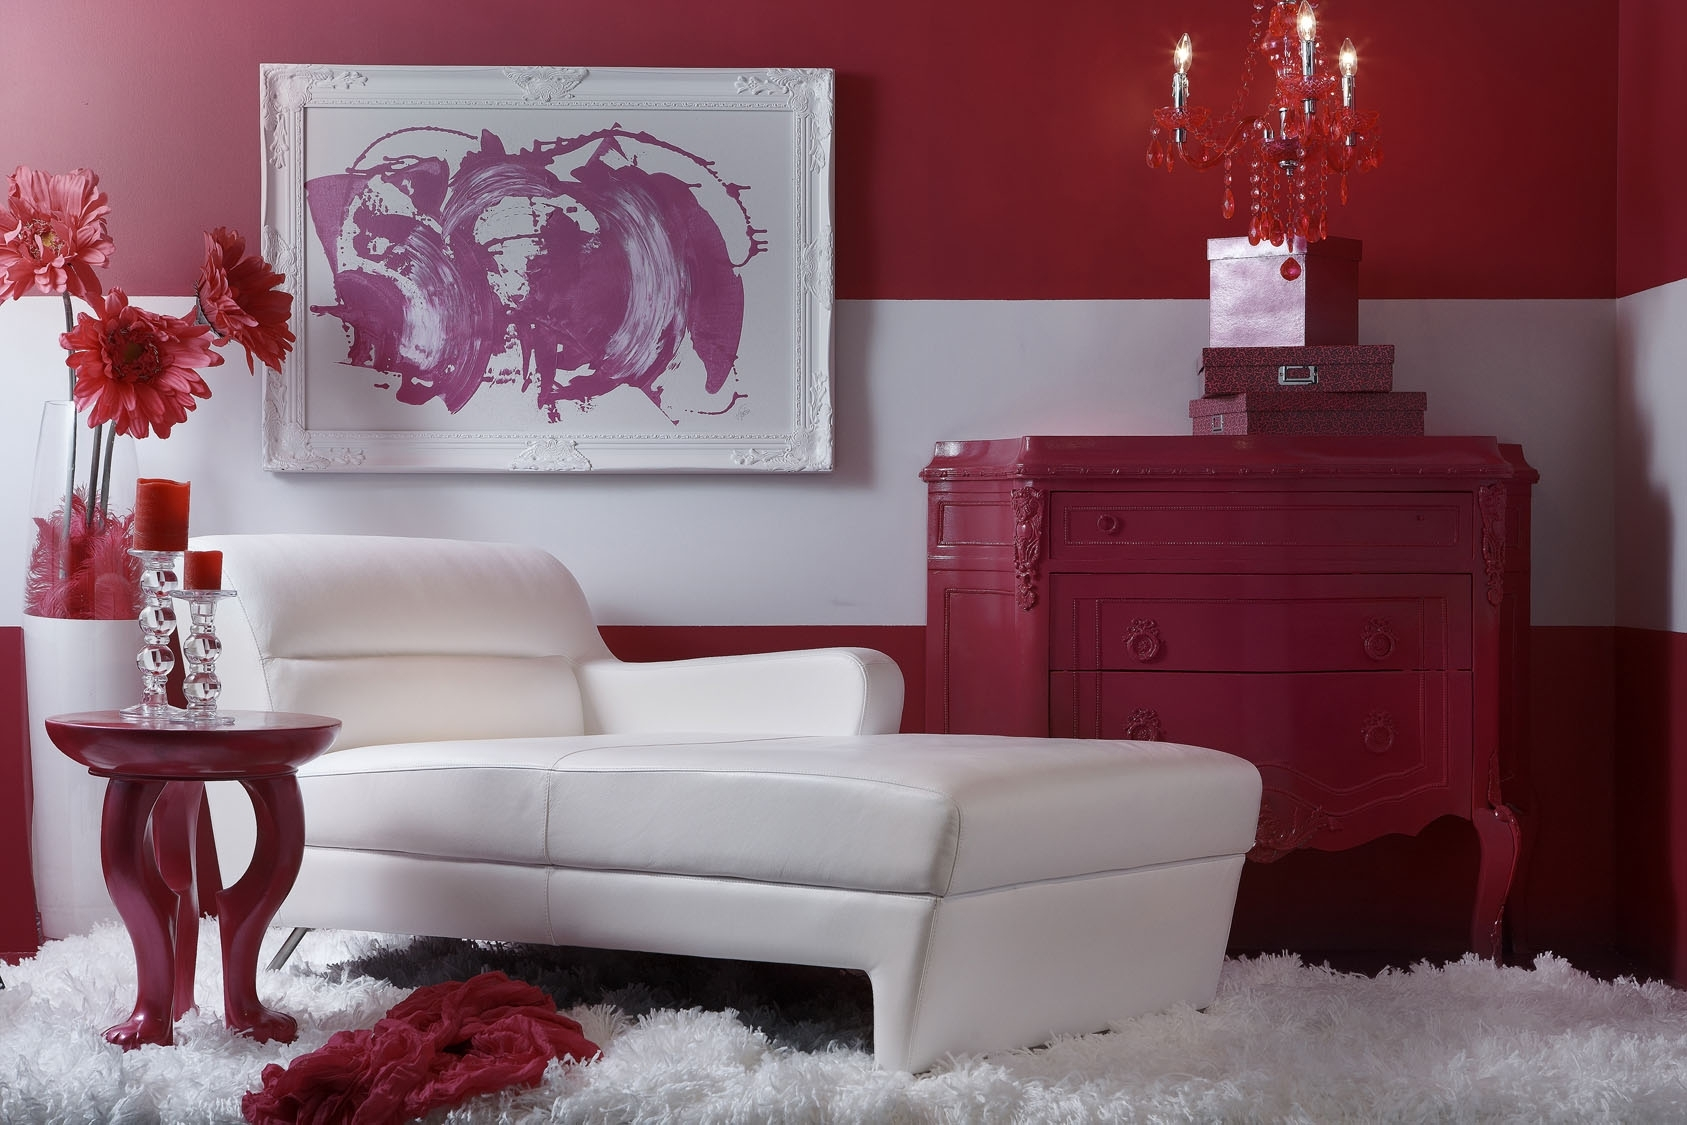 American Leather Niagara Sectional Sofa | Modern Furniture With Regard To Niagara Sectional Sofas (View 9 of 10)